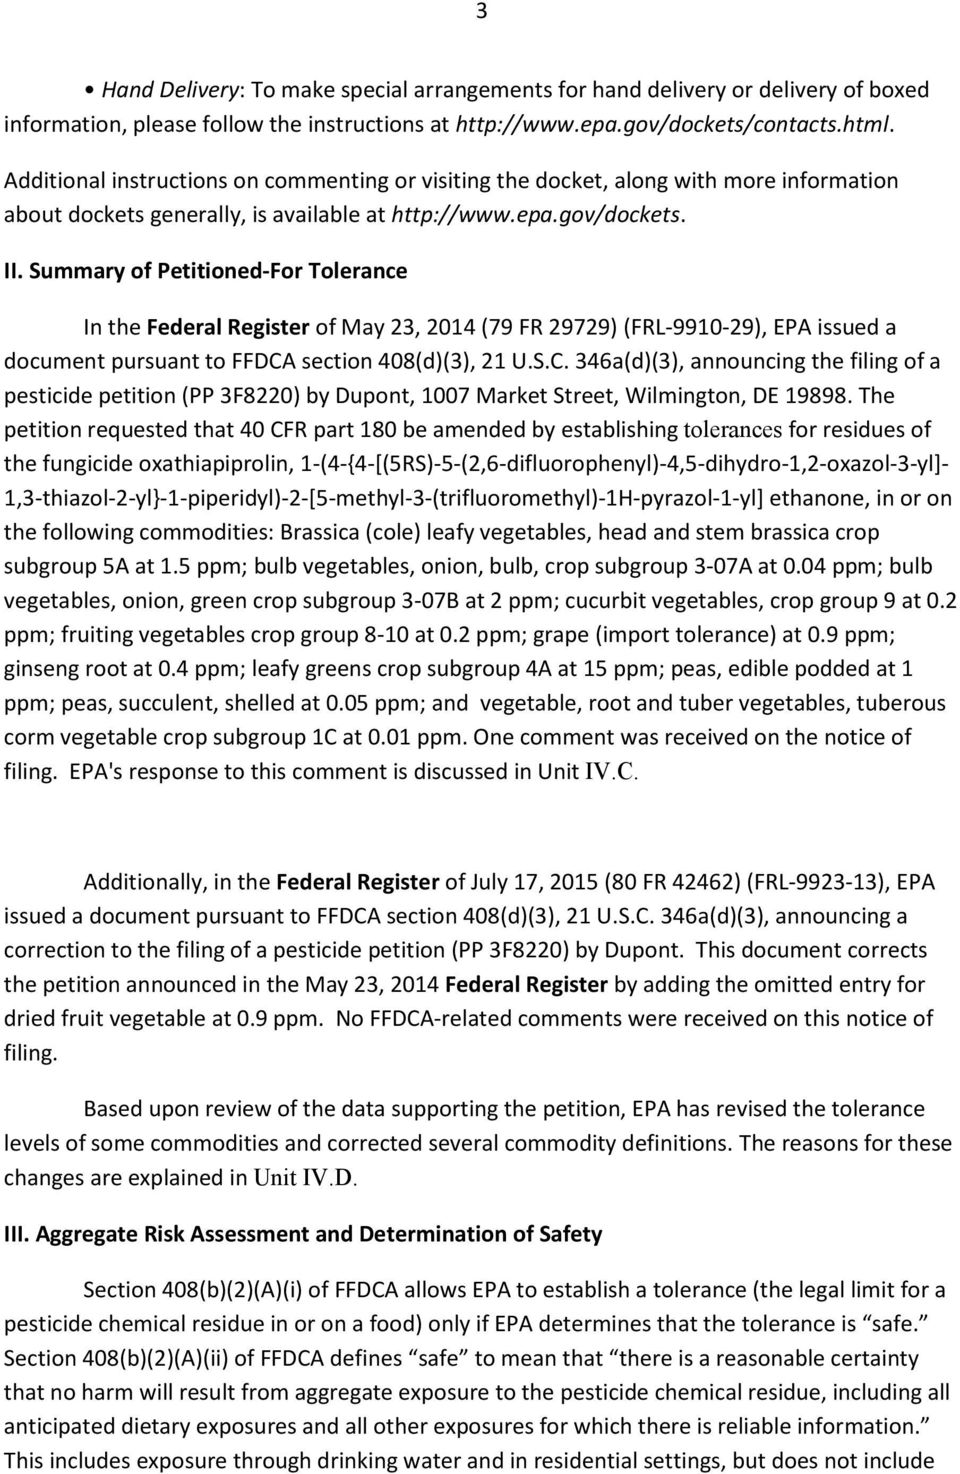 Summary of Petitioned-For Tolerance In the Federal Register of May 23, 2014 (79 FR 29729) (FRL-9910-29), EPA issued a document pursuant to FFDCA